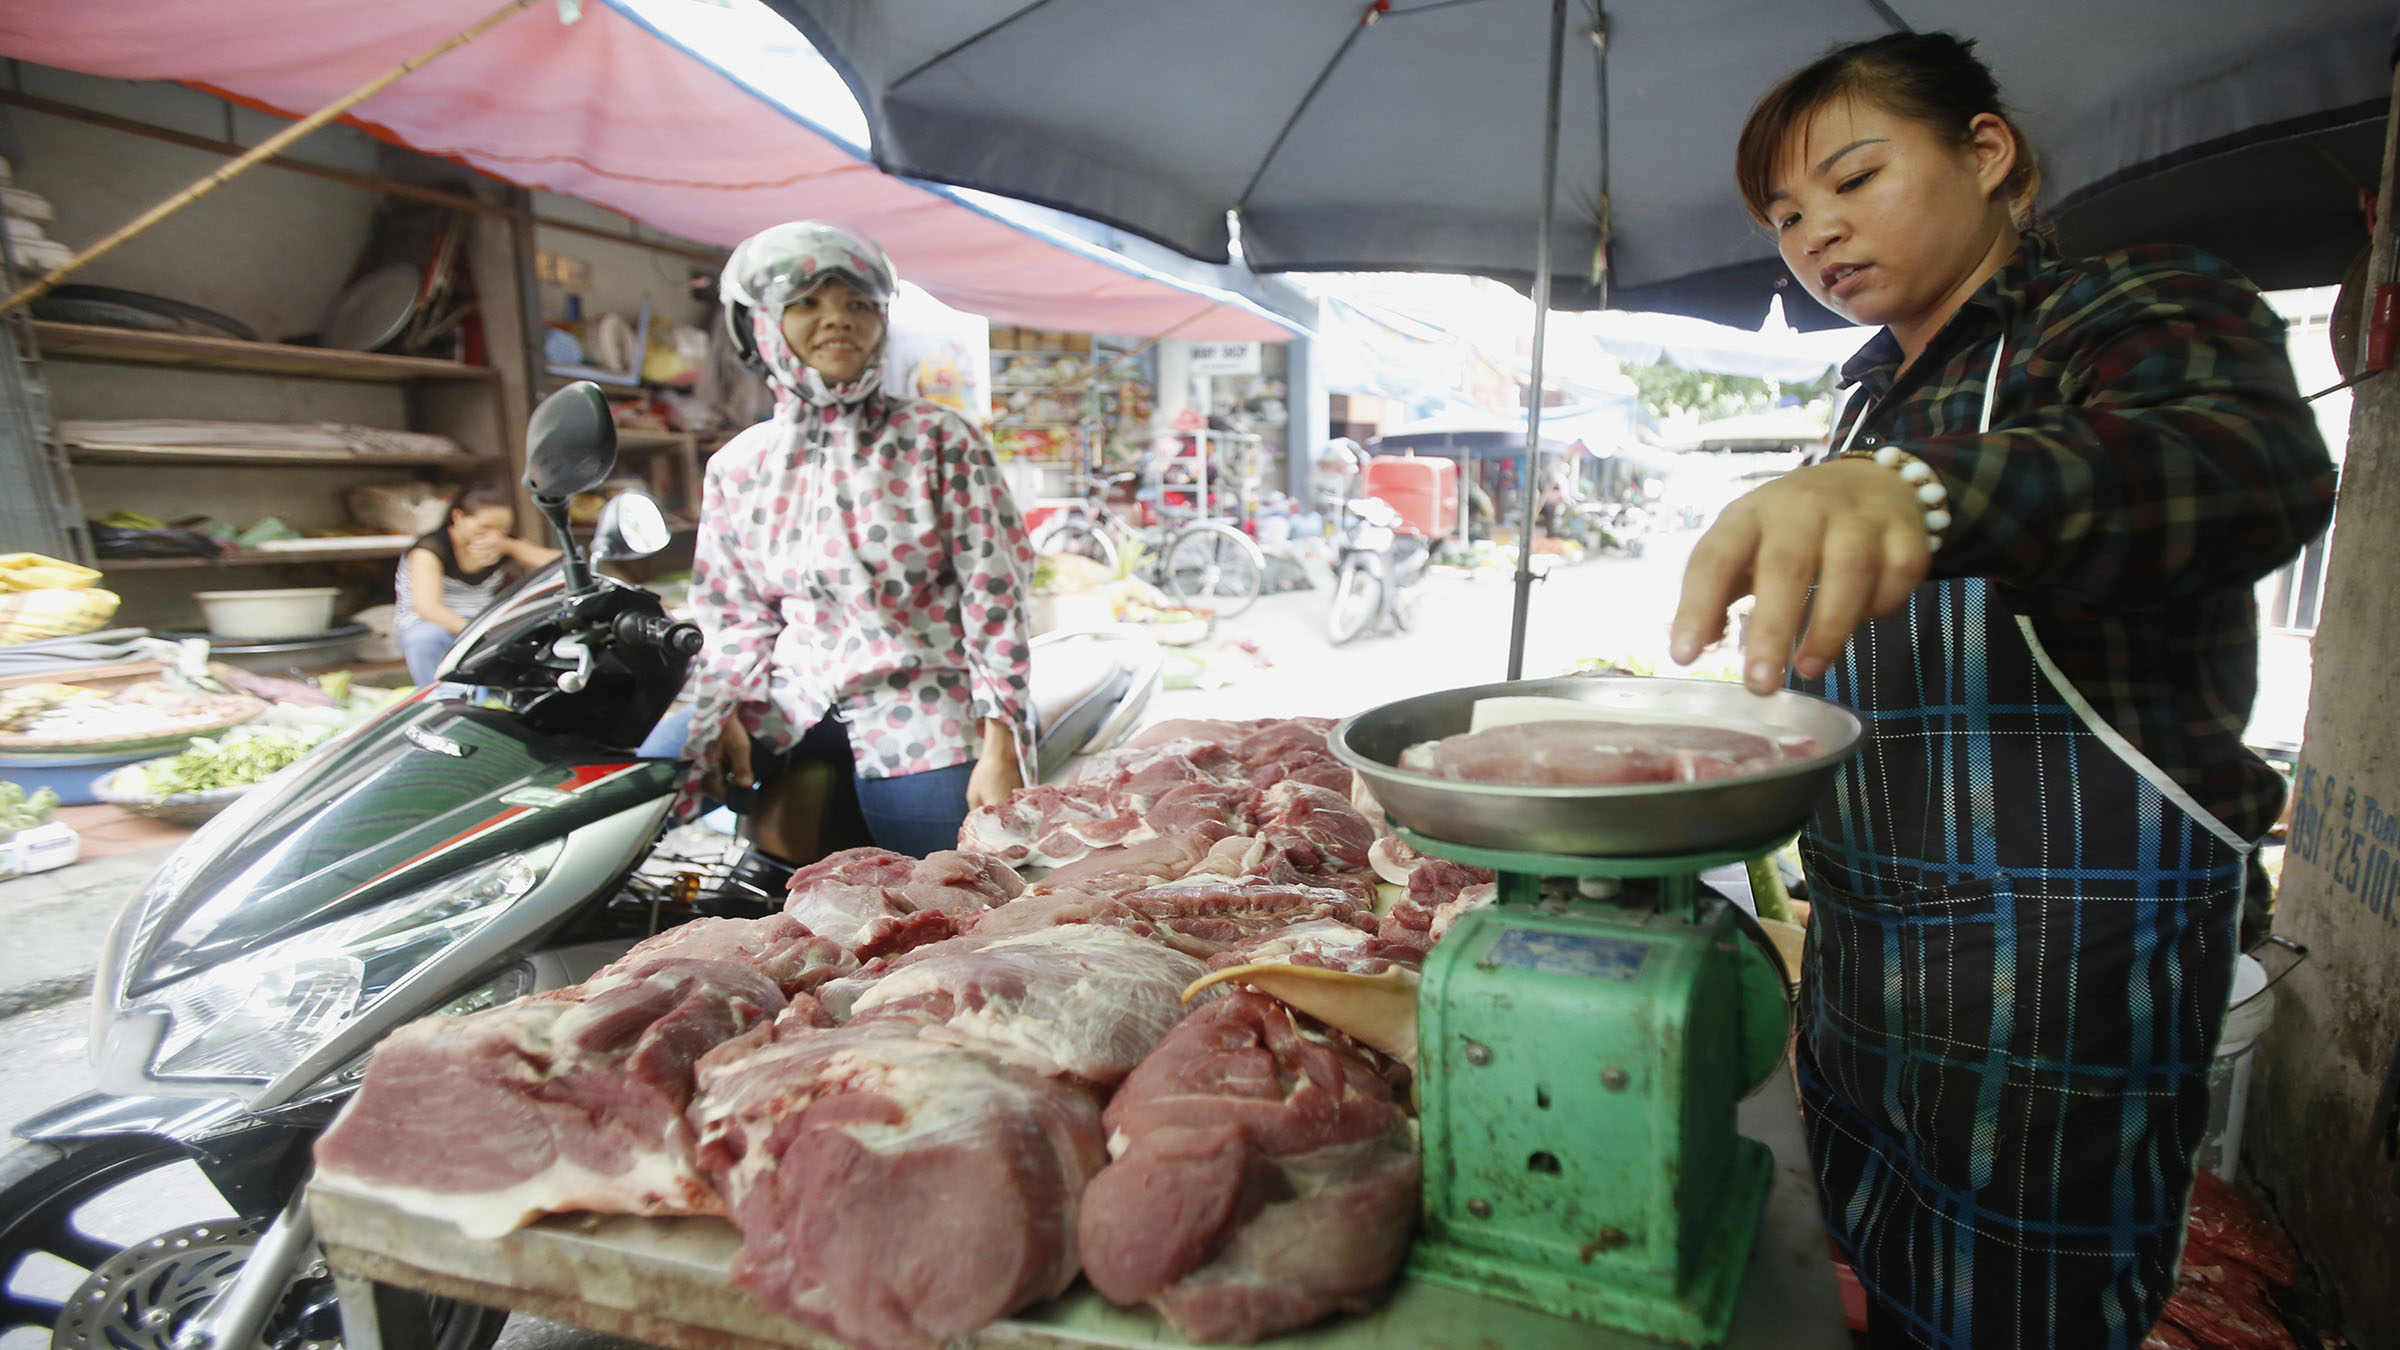 A meat vendor (R) weighs pork for sale at a roadside market in Hanoi October 2, 2014. Vietnam's annual inflation rate this year is forecast to be 3 percent to 4 percent, below a government target, as core inflation has been slowing in the past year, a government agency said in a report. REUTERS/Kham (VIETNAM - Tags: FOOD BUSINESS) - RTR48MM6